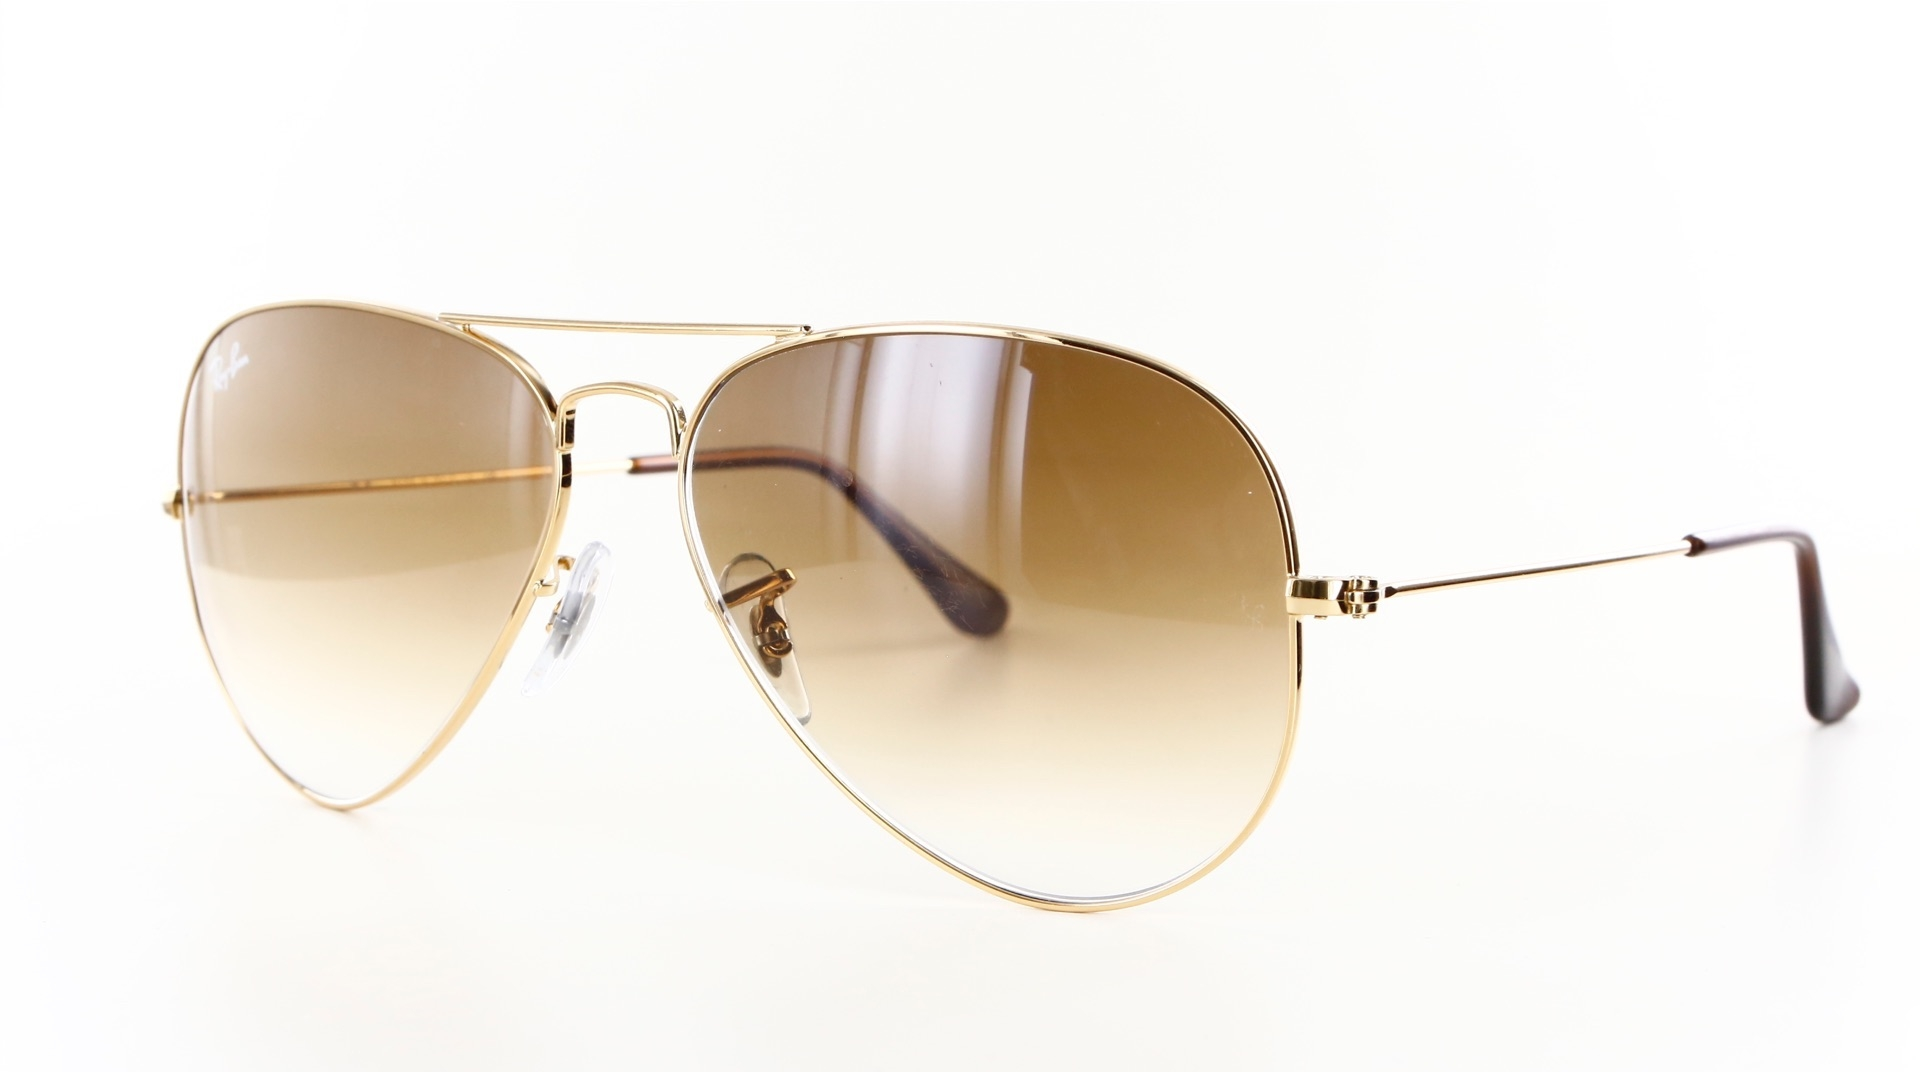 Ray-Ban - ref: 58112